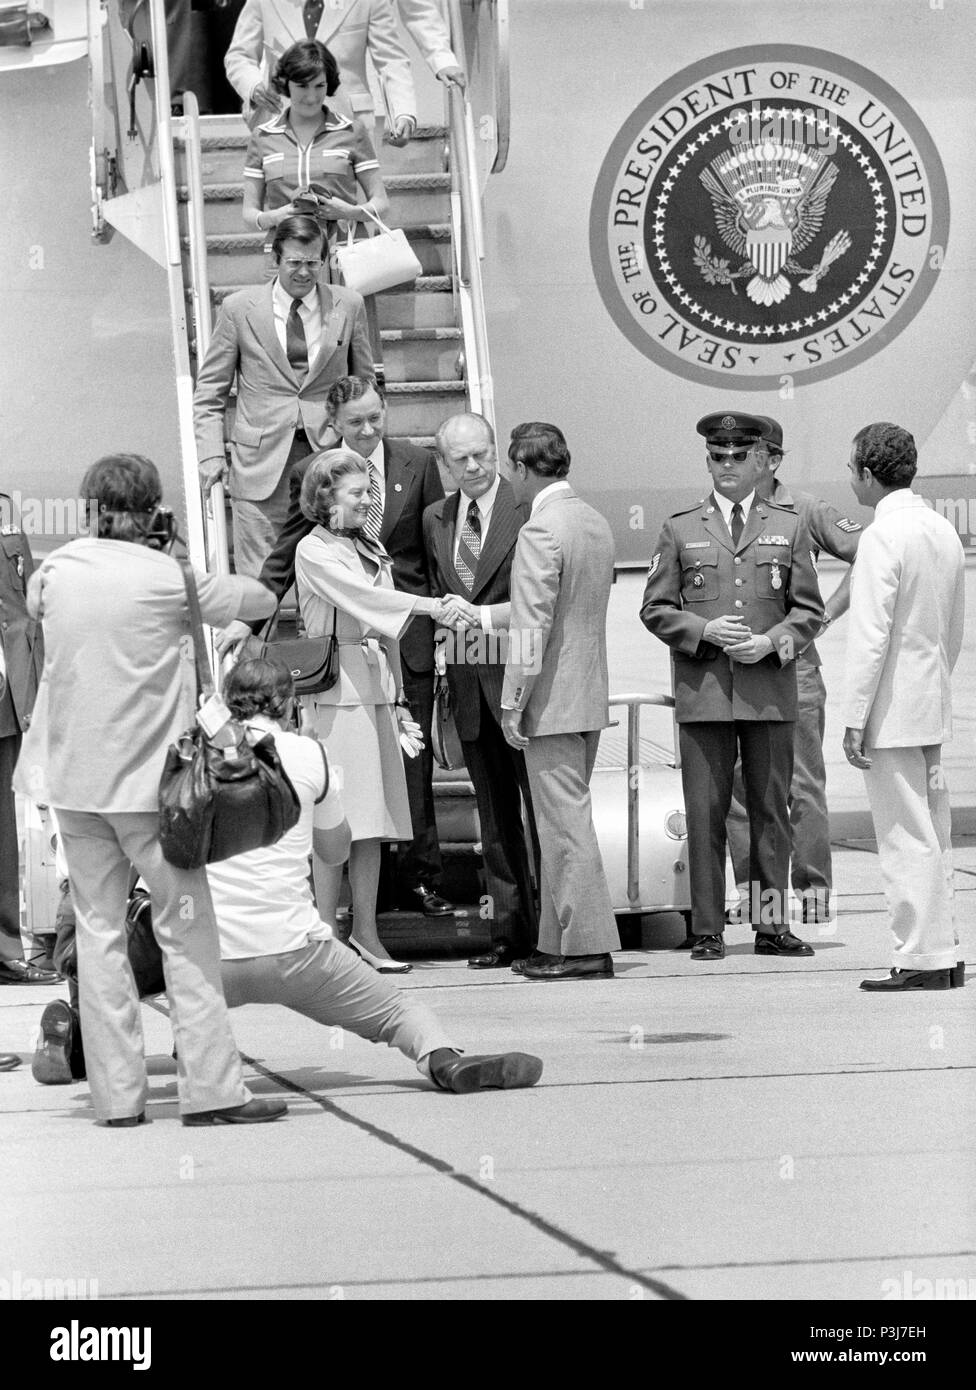 FORT SMITH, AR, USA - AUGUST 10, 1975 -- Arkansas Governor David Pryor greets President and Mrs. Gerald Ford as they arrive to tour a Vietnamese refugee center recently opened in adjacent Fort Chaffee.  Fort Chaffee was converted to a refugee center to help handle the flood of refugees that occurred after South Vietnam fell to the North at the end of the Vietnam War. - Stock Image